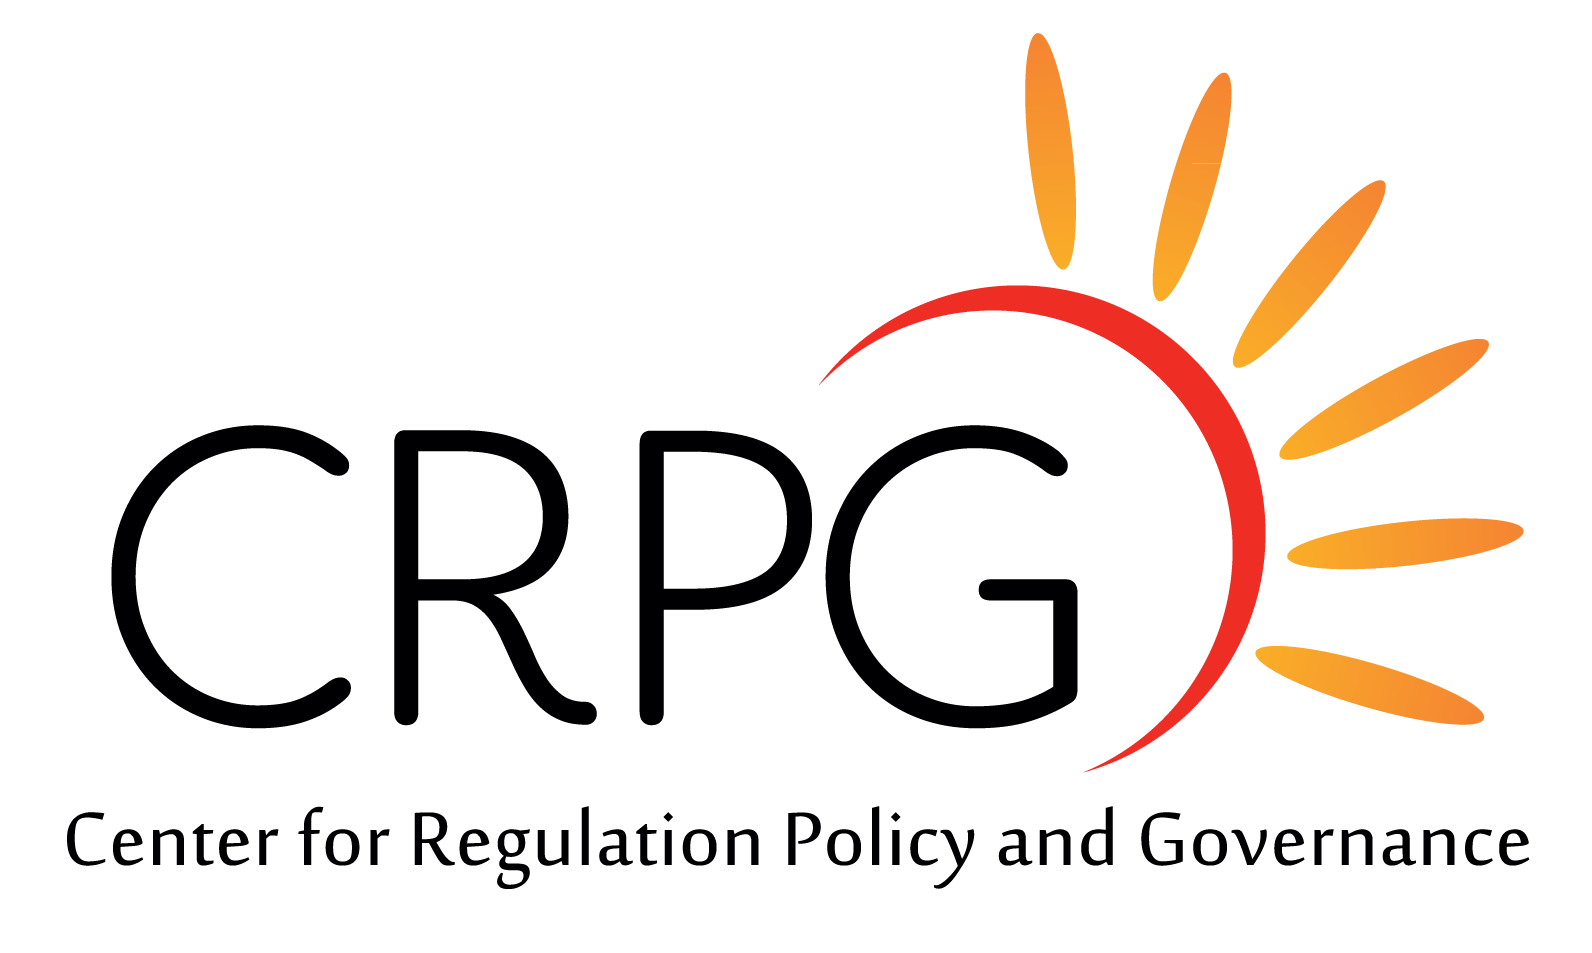 Center for Regulation Policy and Governance